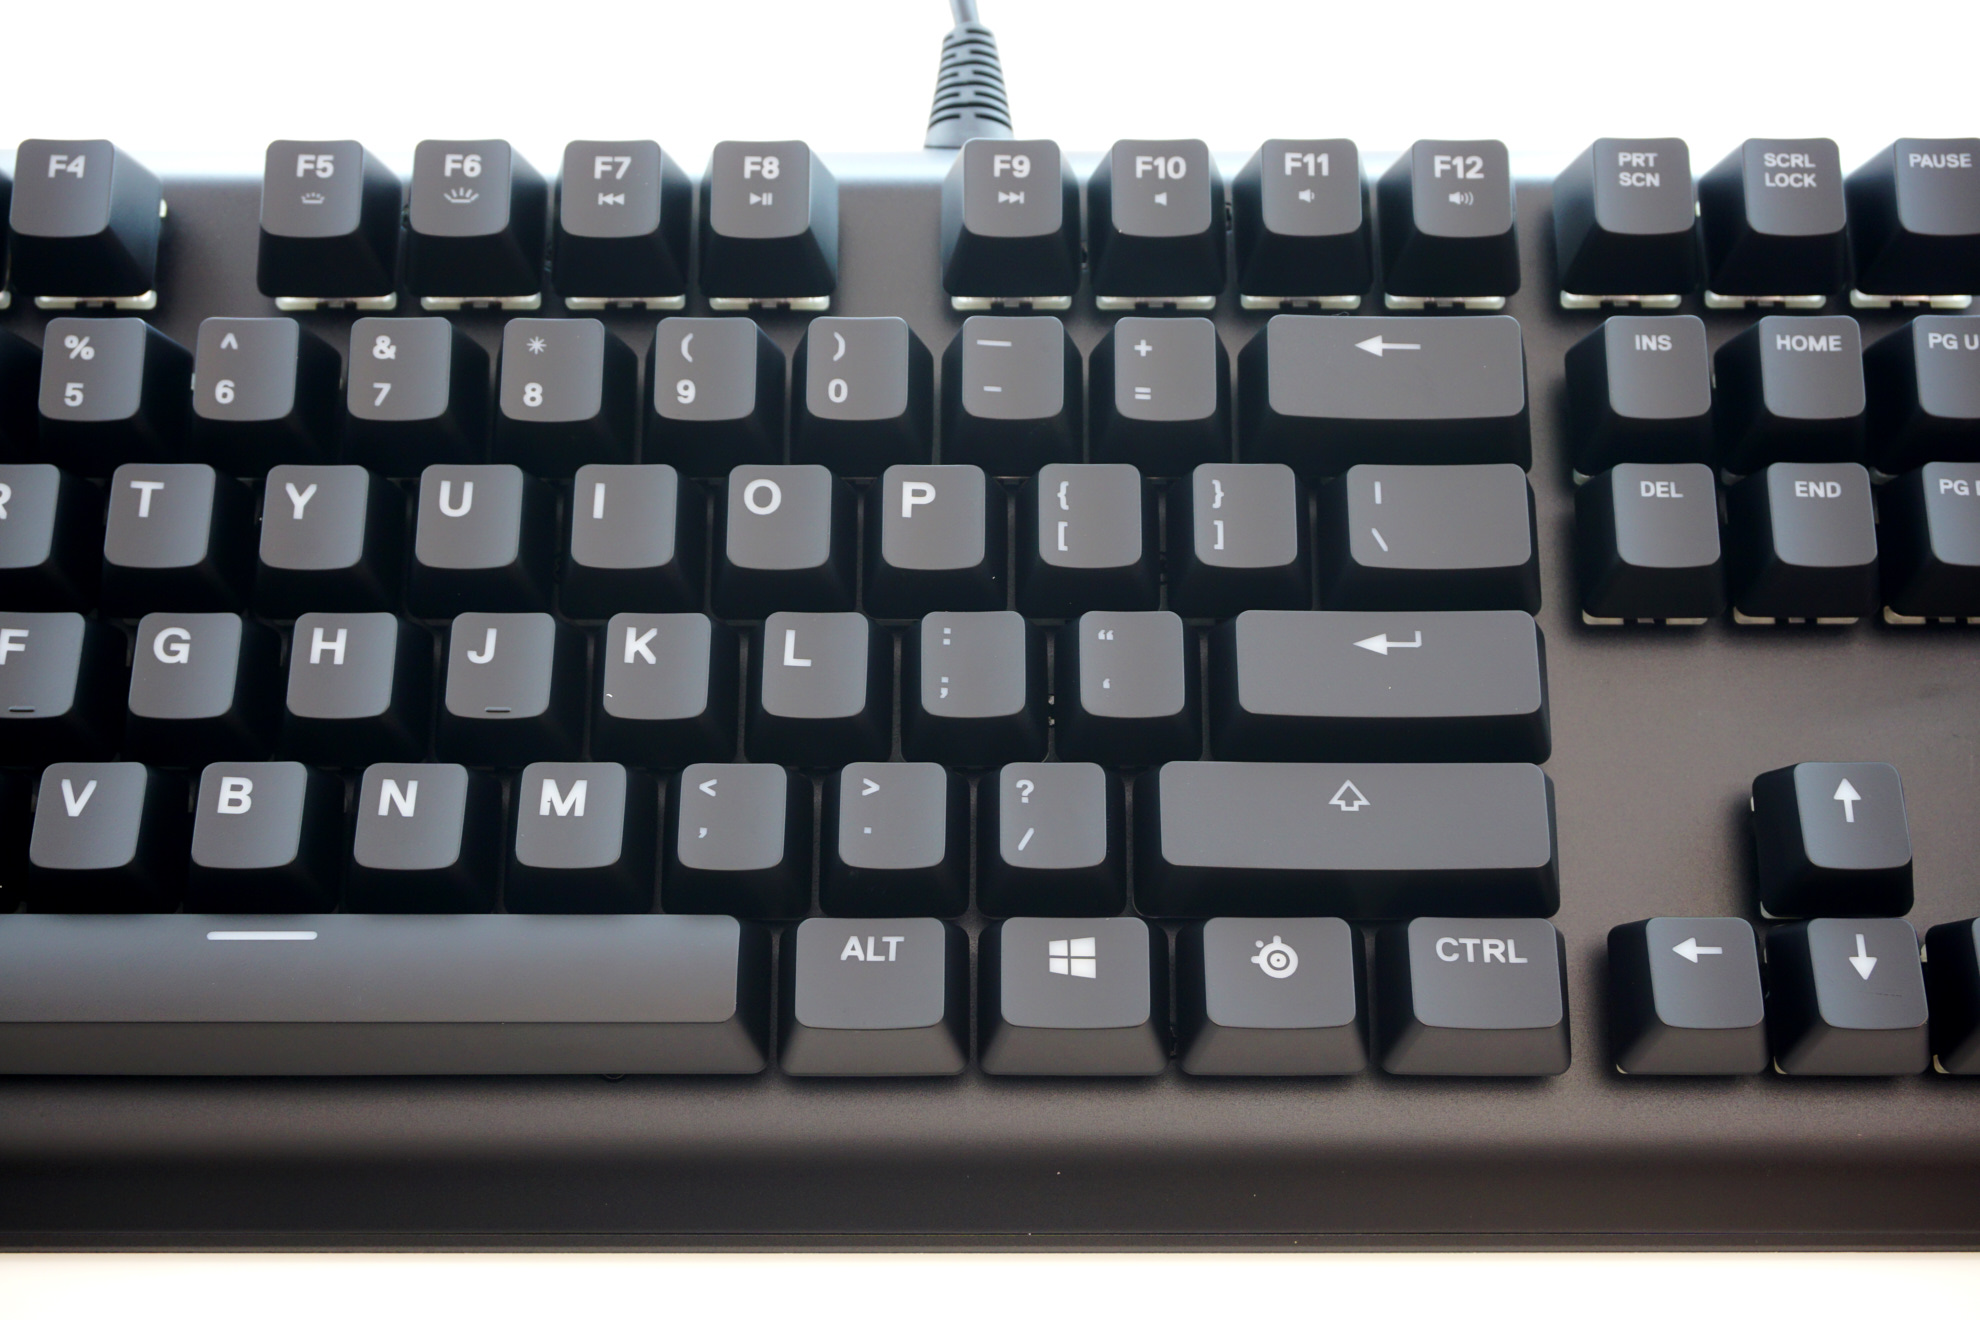 The SteelSeries Apex M750 Mechanical Keyboard - The